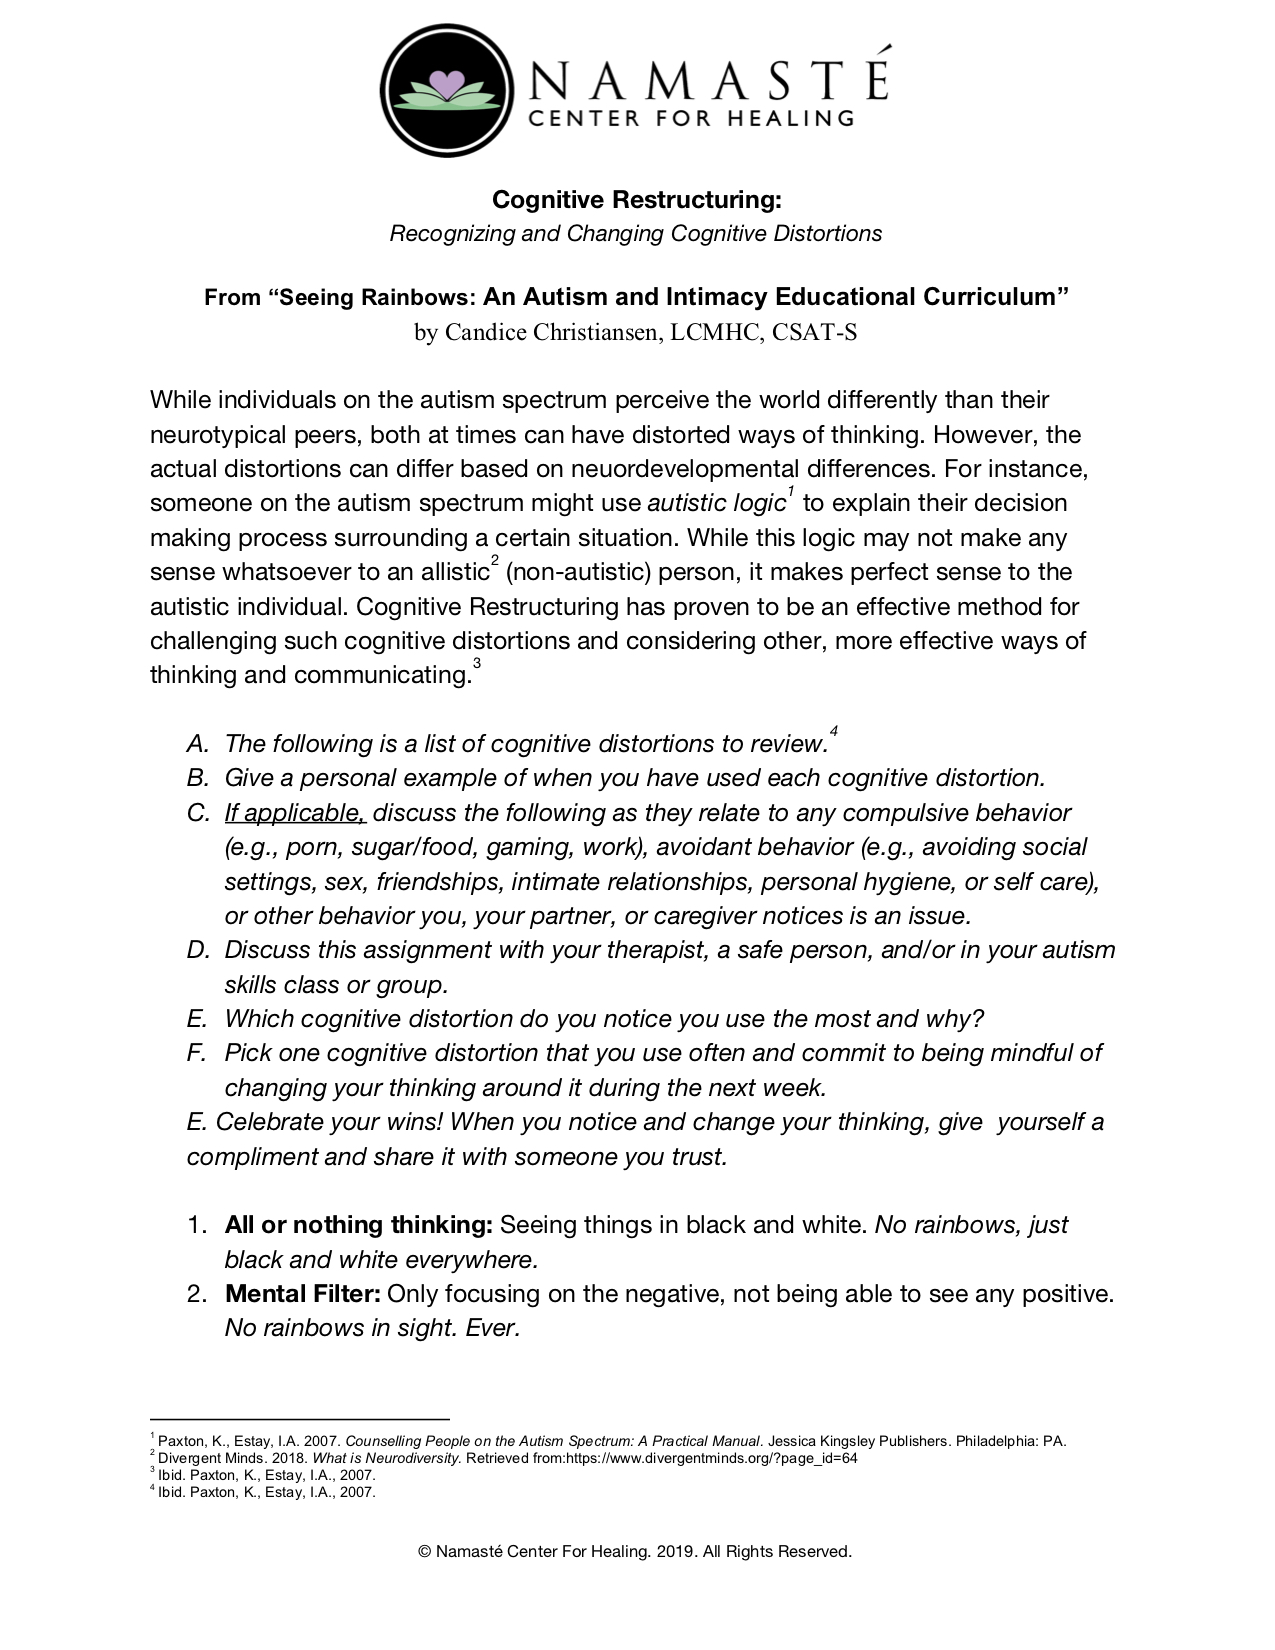 Cognitive Restructuring: Recognizing and Changing Cognitive Distortions - by Candice Christiansen, LCMHC, CSAT-S